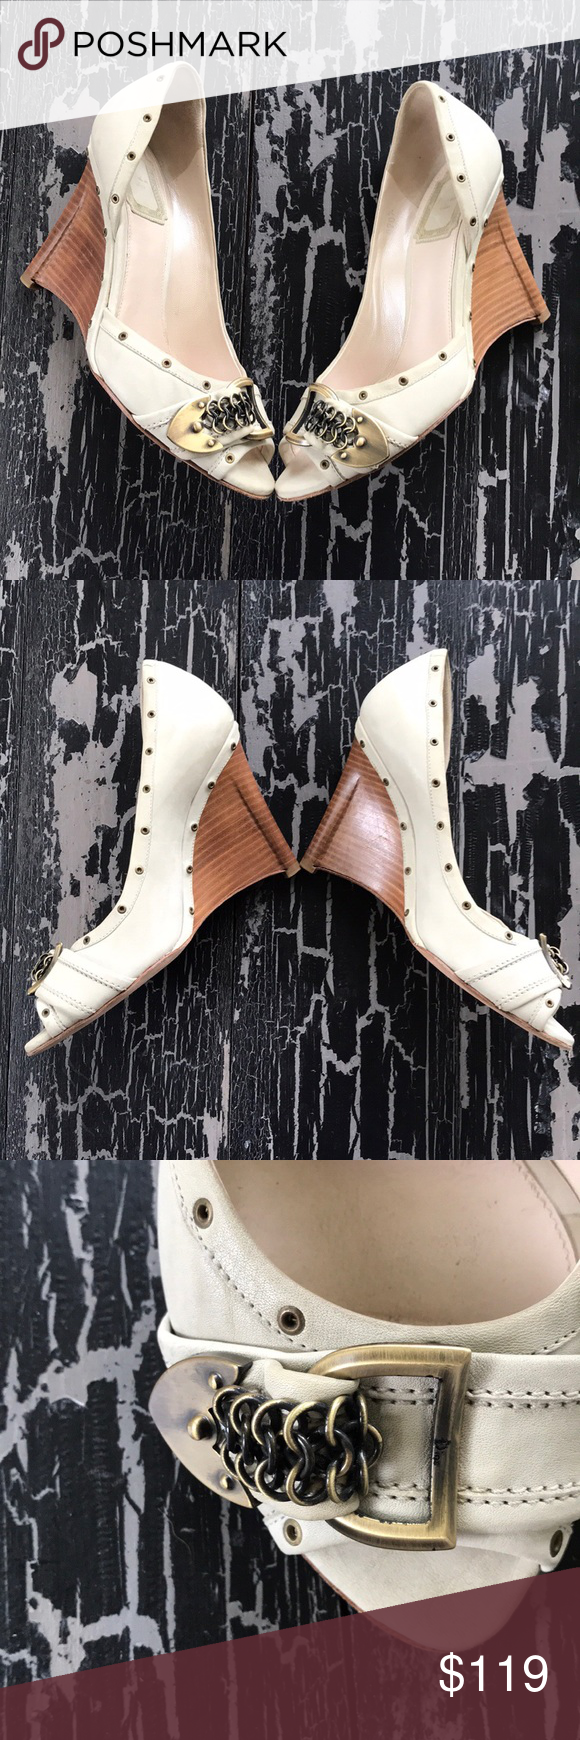 Christian Dior Wedges Spotted while shopping on Poshmark: Christian Dior Wedges!